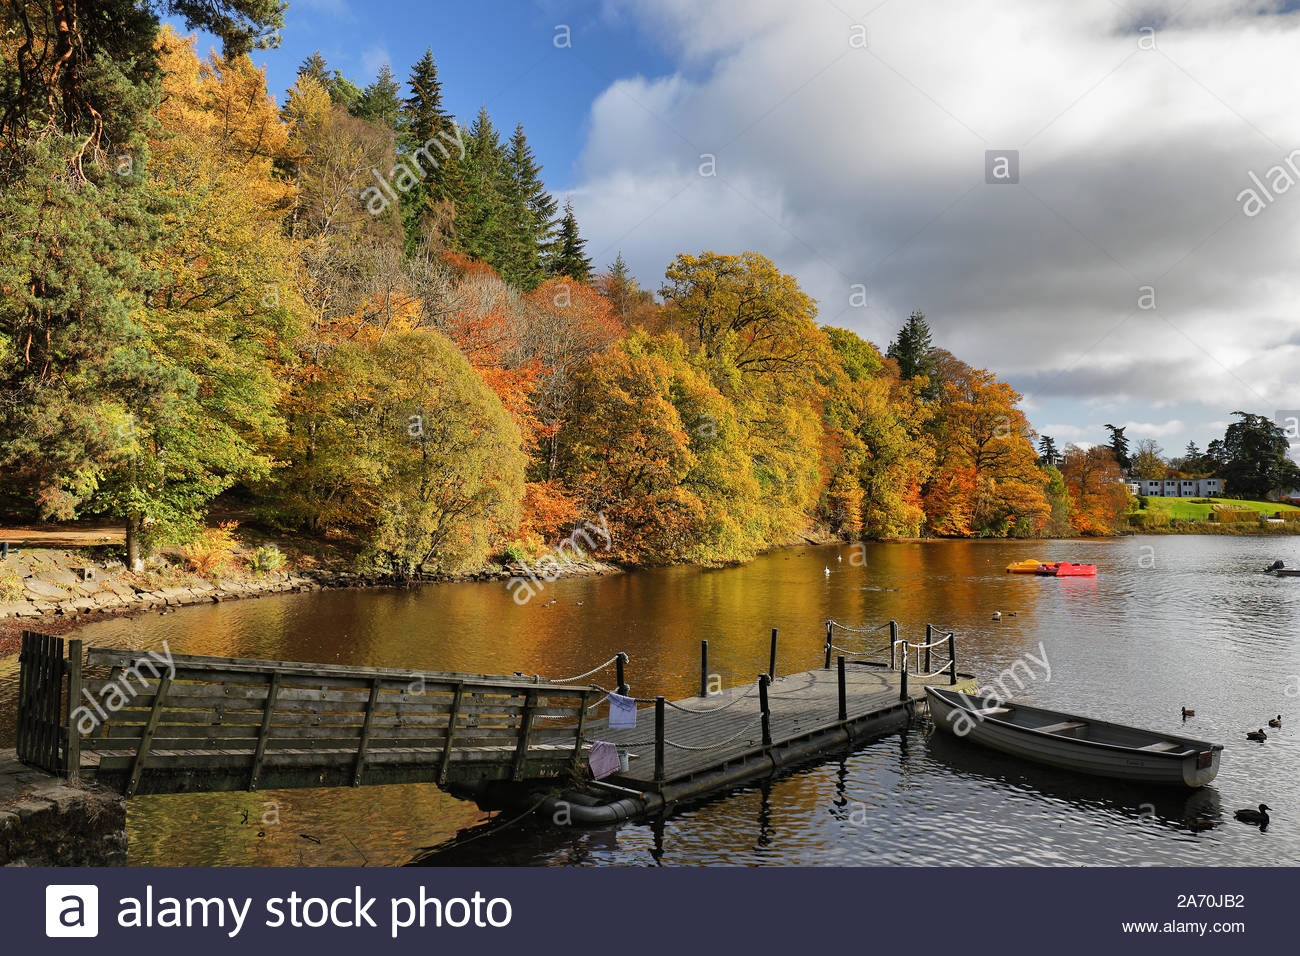 Una soleggiata giornata autunnale da Loch Faskally, Perth and Kinross, Scozia. Foto Stock